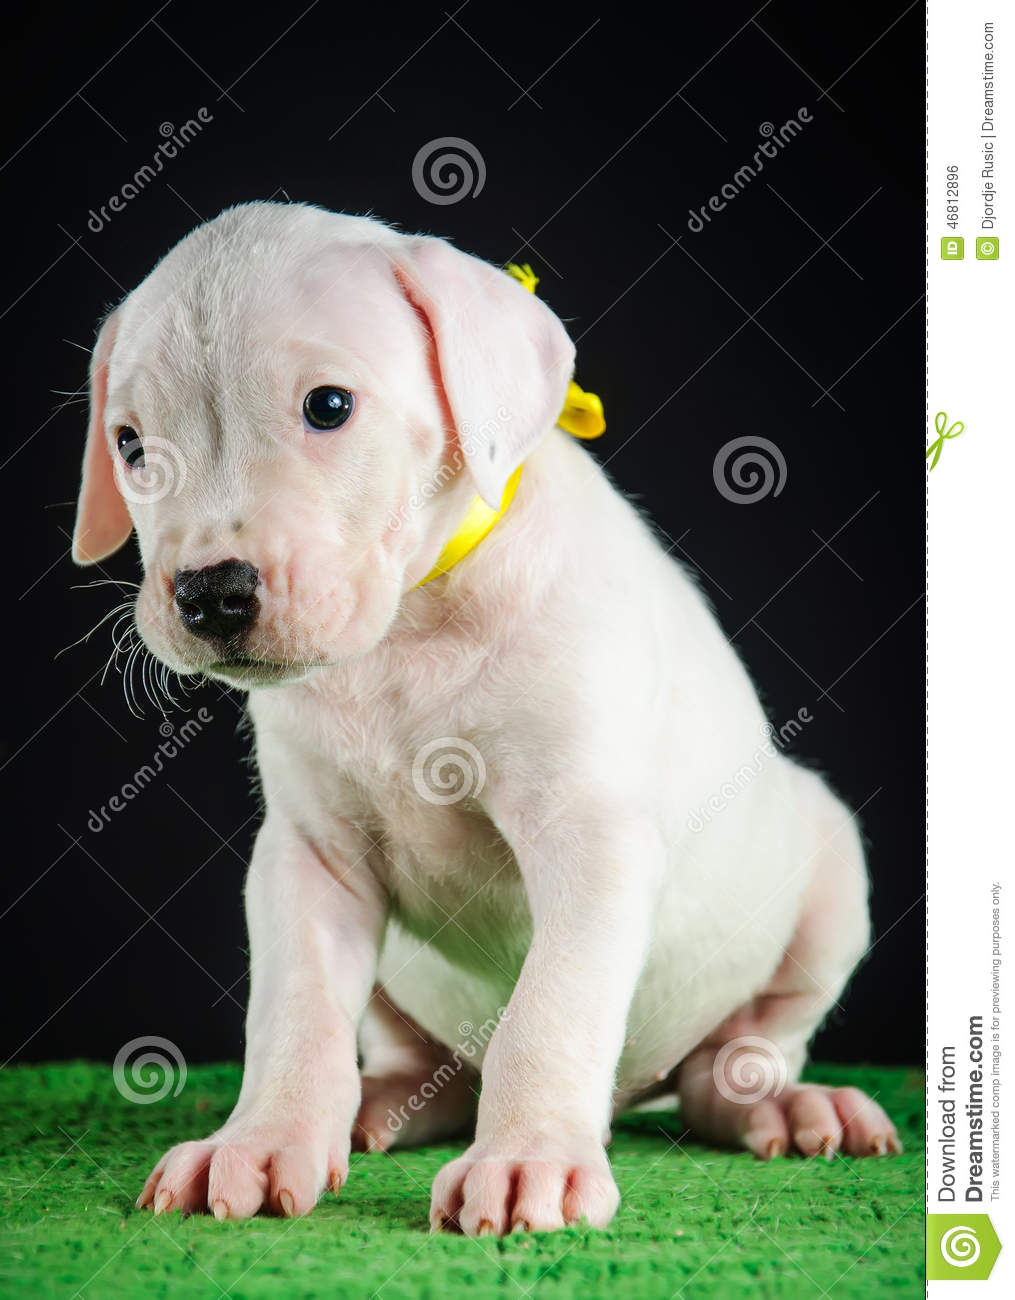 Dogo Argentino puppy stock photo  Image of looking, laziness - 46812896